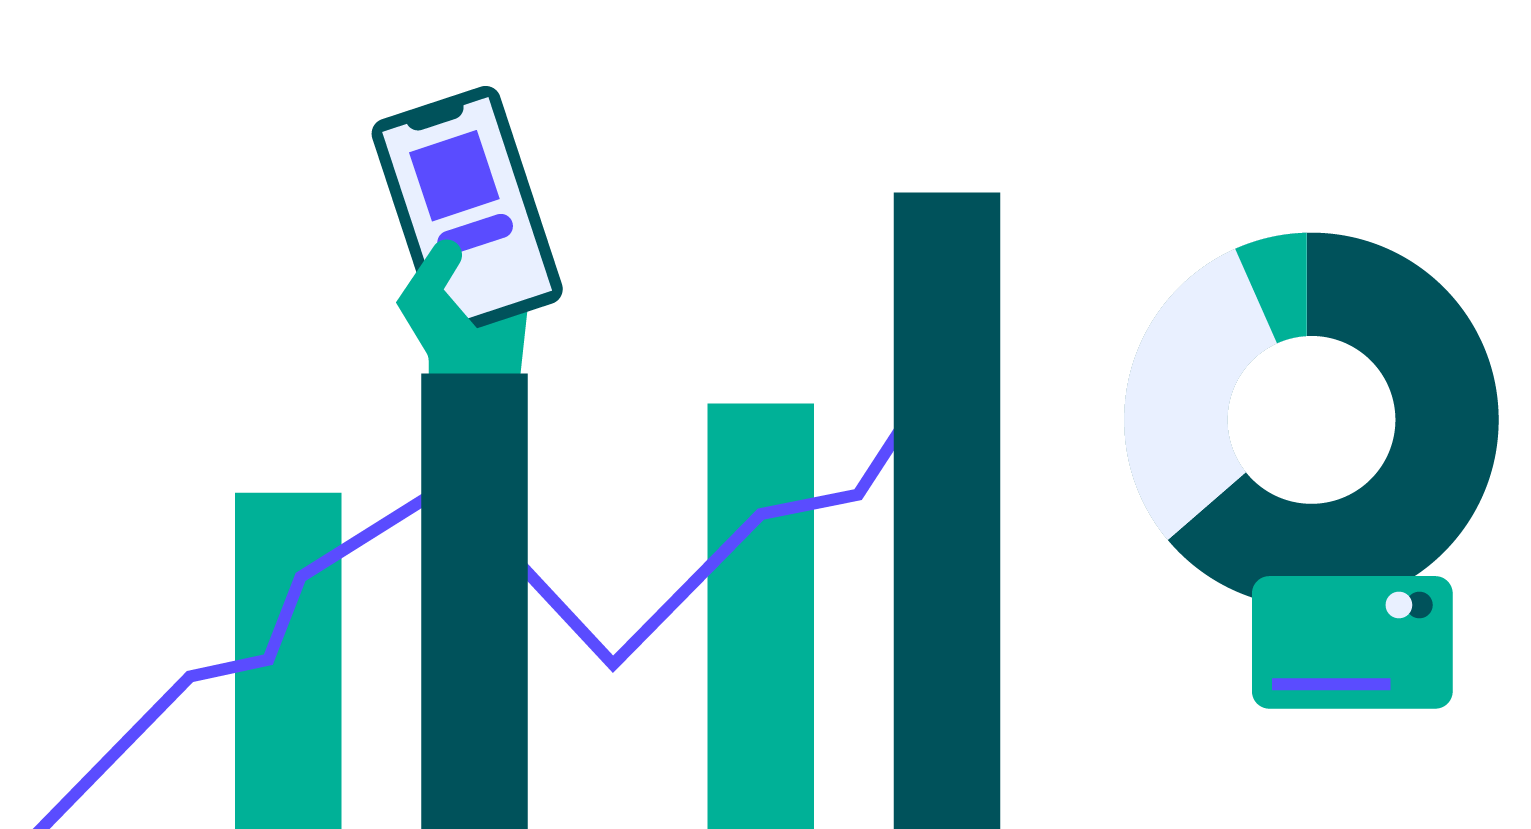 3 mCommerce Trends To Watch in 2021